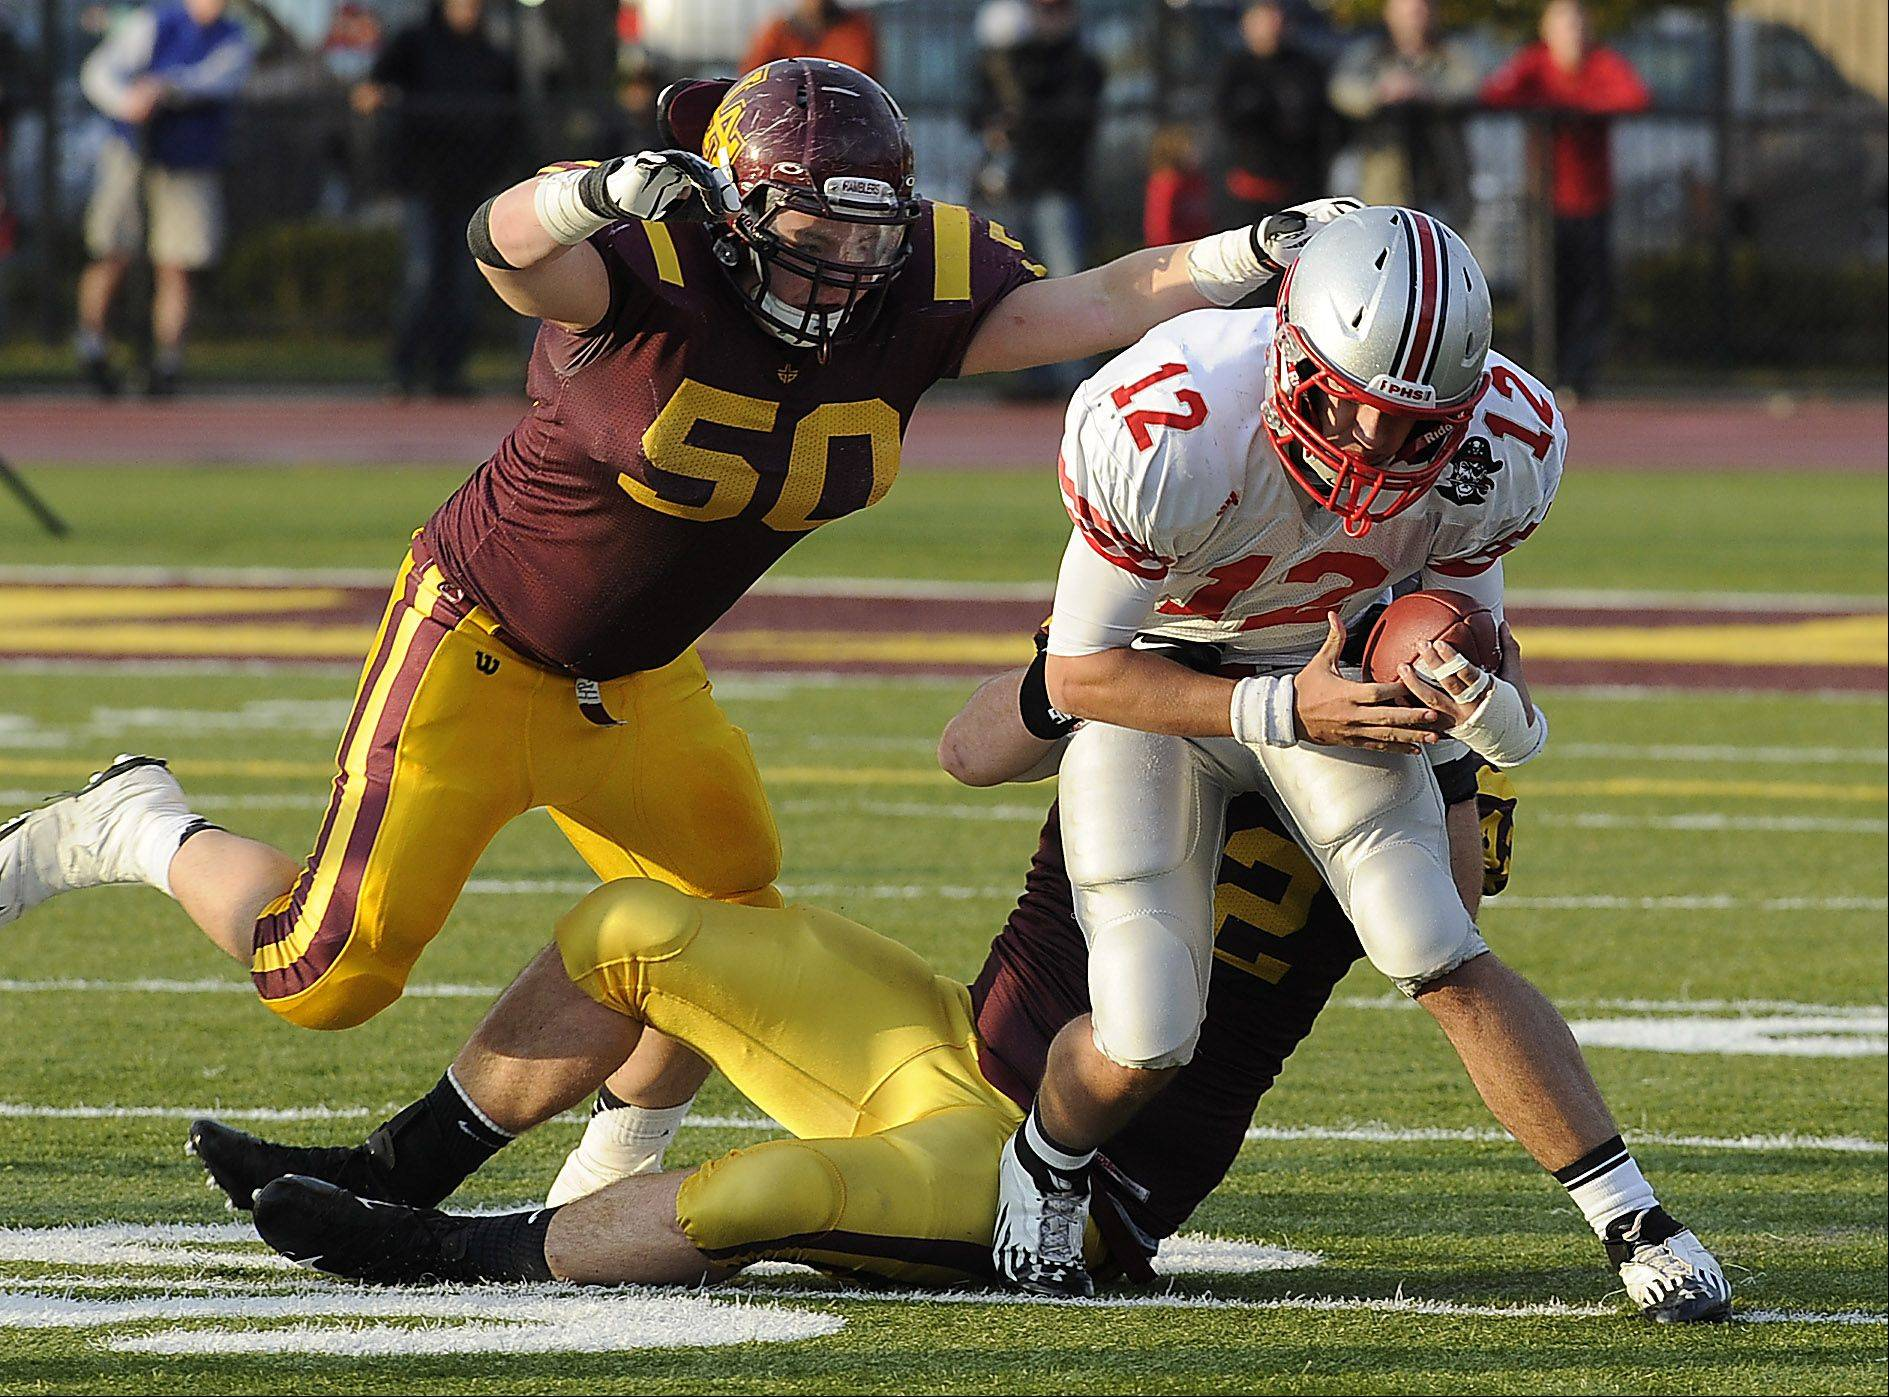 Loyola's John Rushin and Darby Goodwin sack Palatine quarterback Ethan Olles.